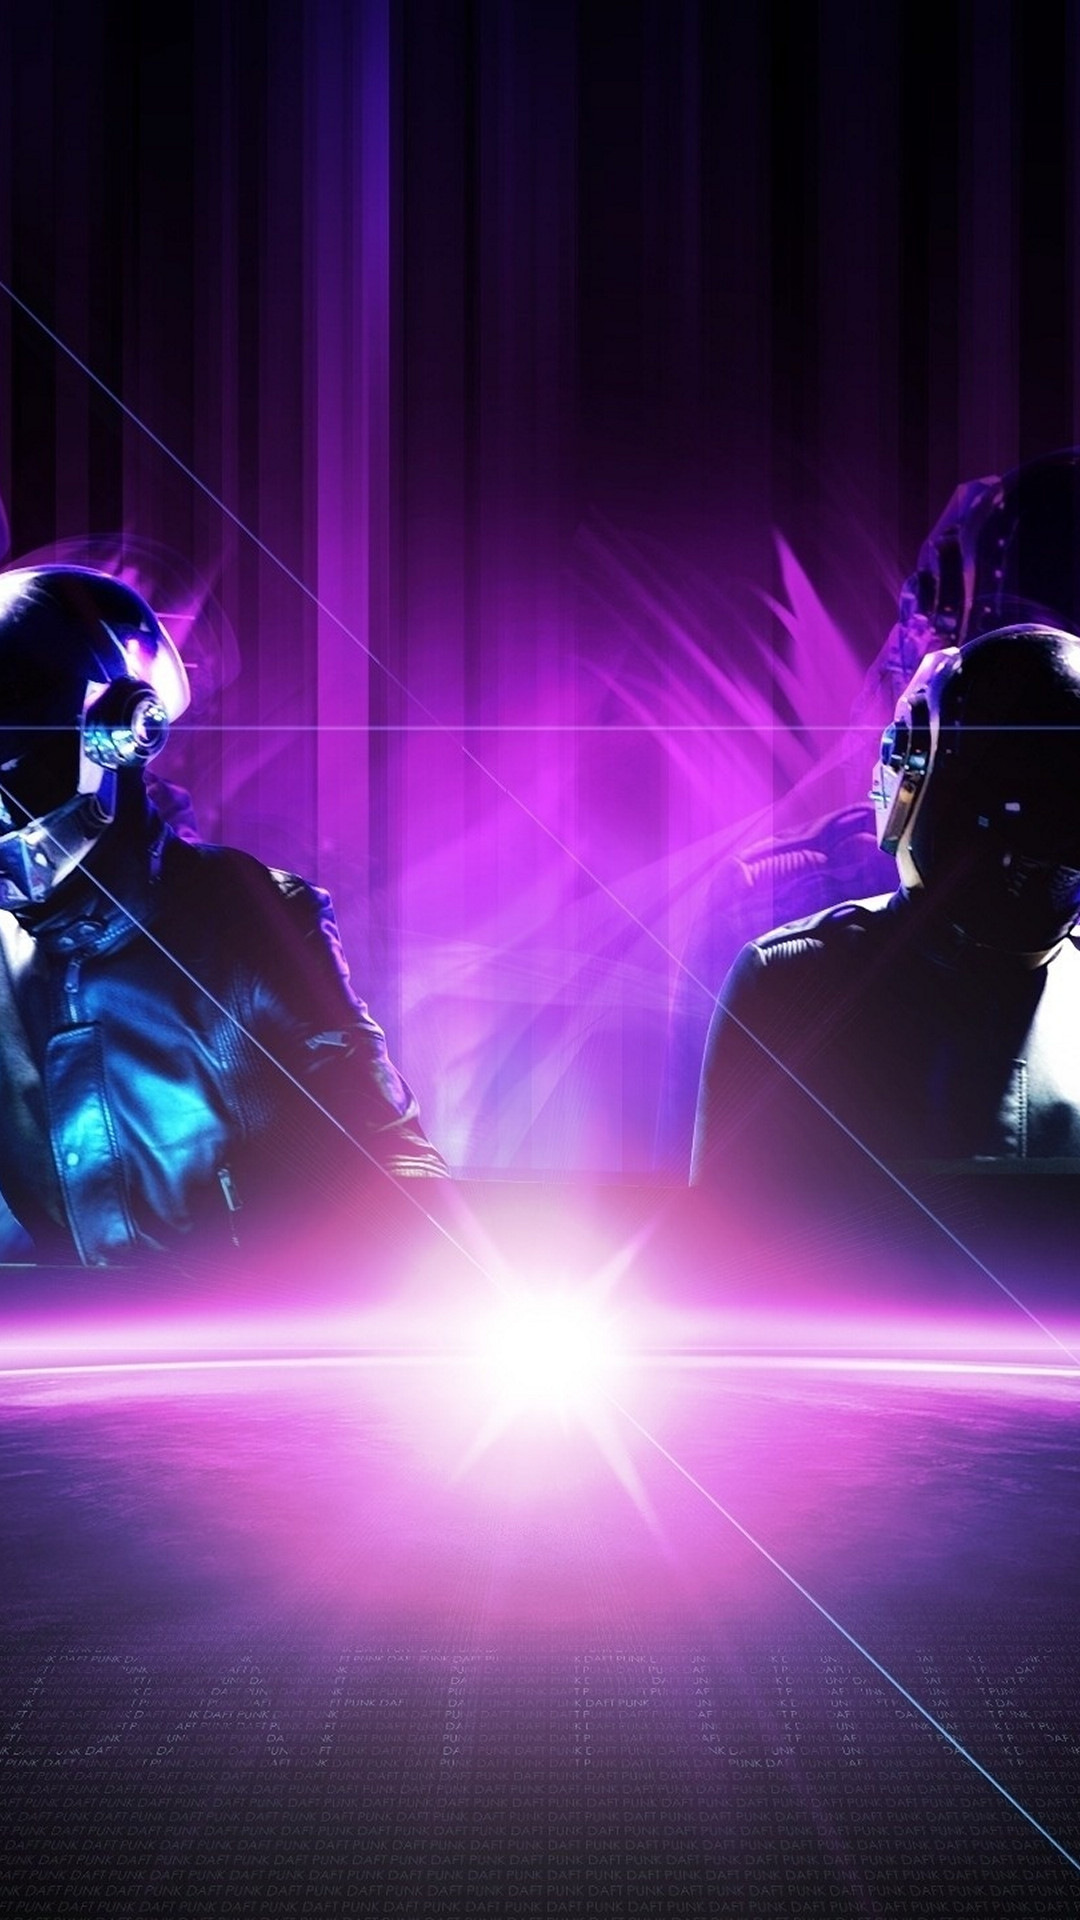 Wallpaper for galaxy s4 with daft punk with purple tone in  resolution